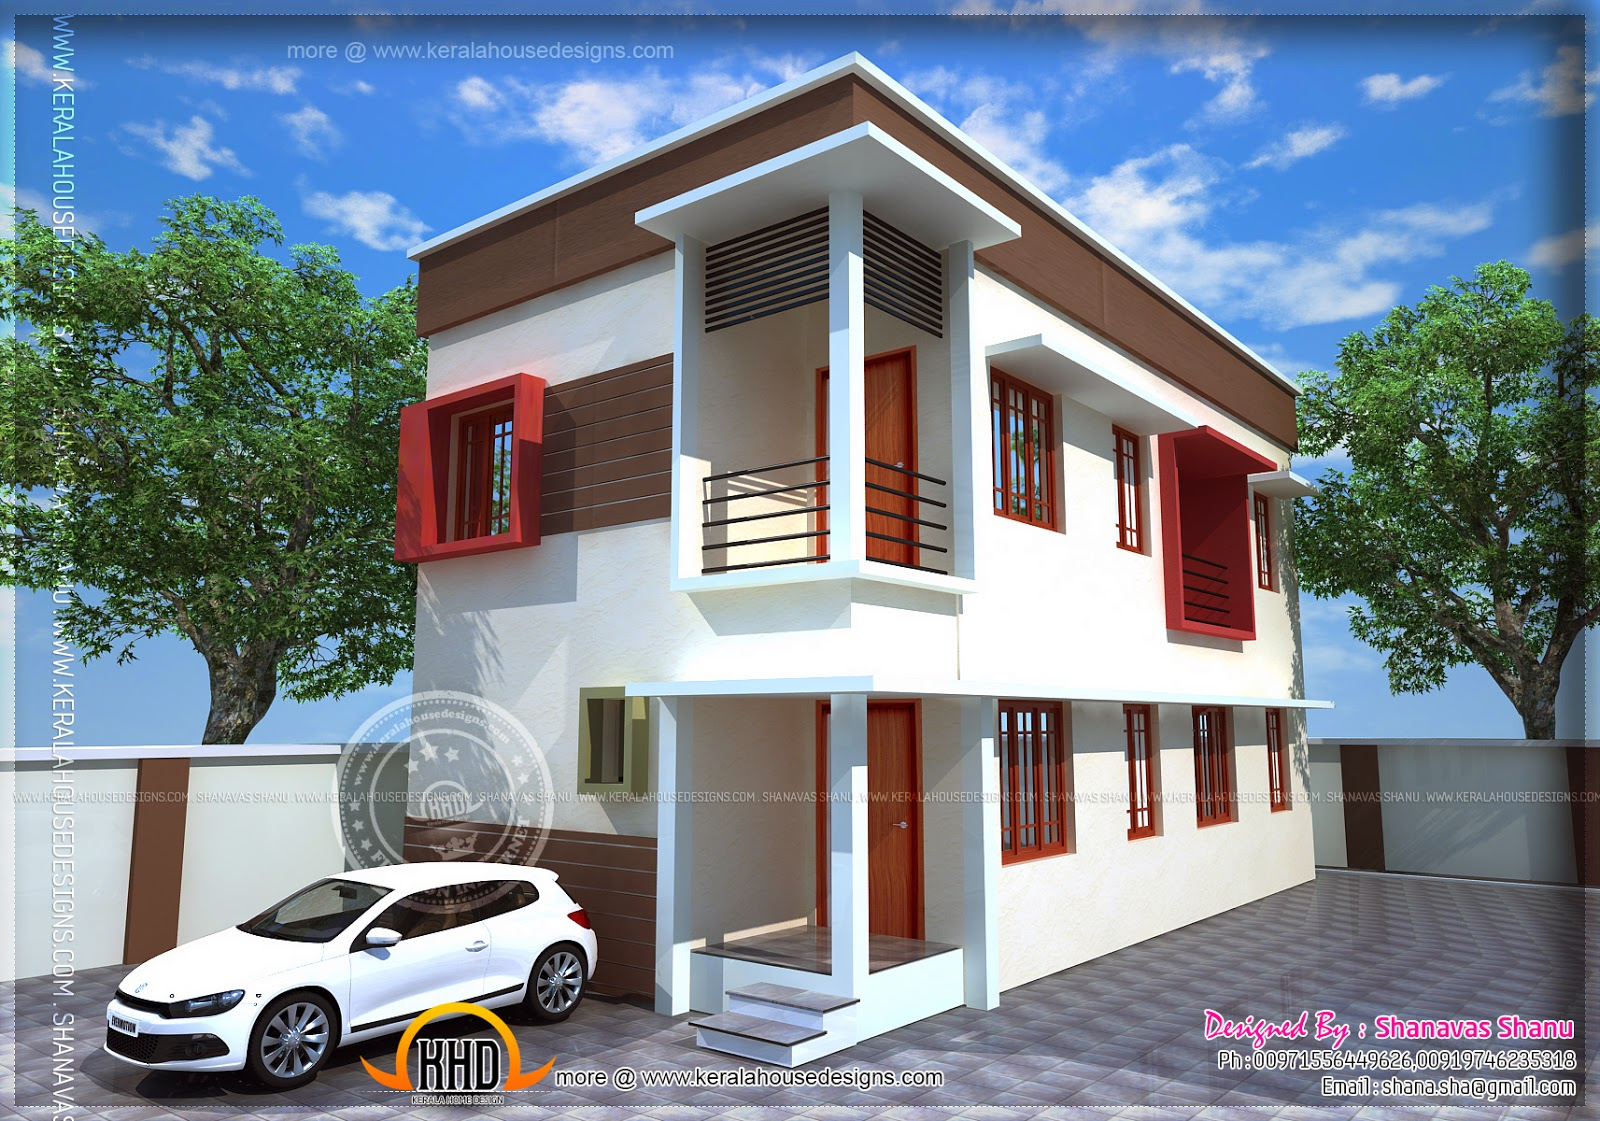 Small plot villa in cents of land kerala home for Small villa plans in kerala